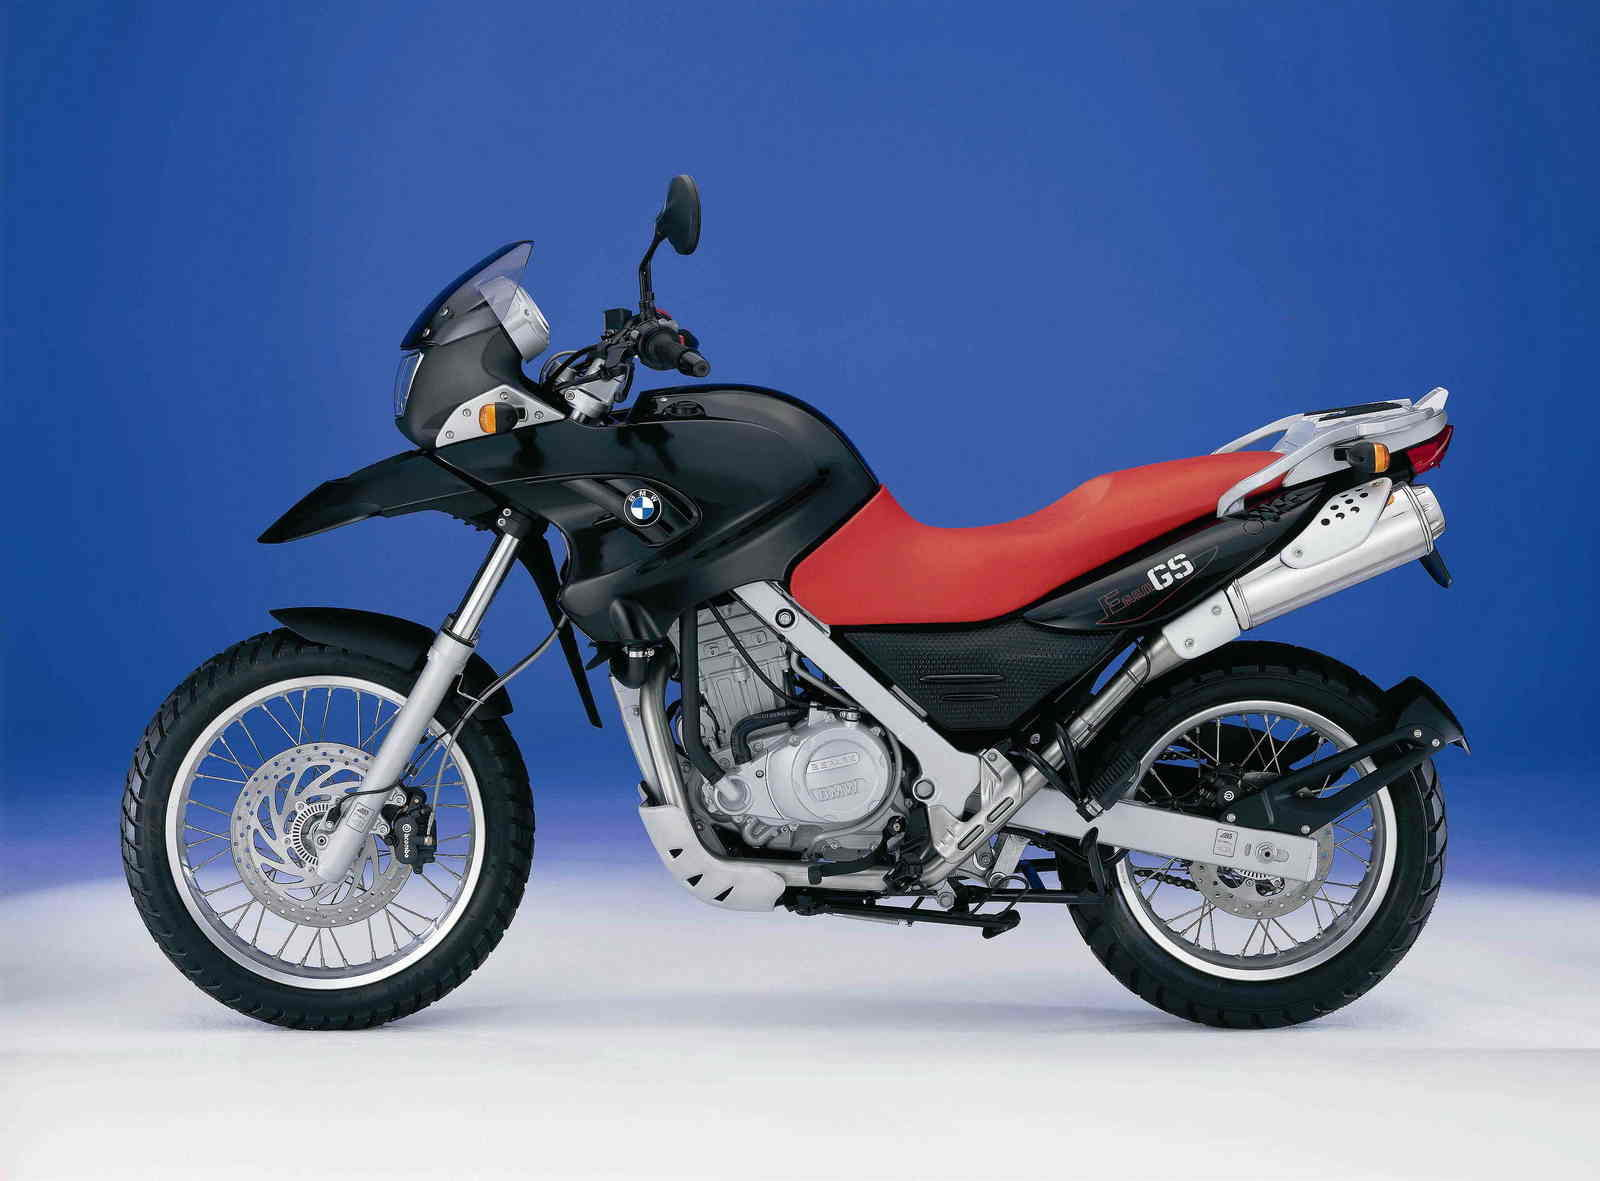 2006 bmw f 650 gs picture 168990 motorcycle review. Black Bedroom Furniture Sets. Home Design Ideas